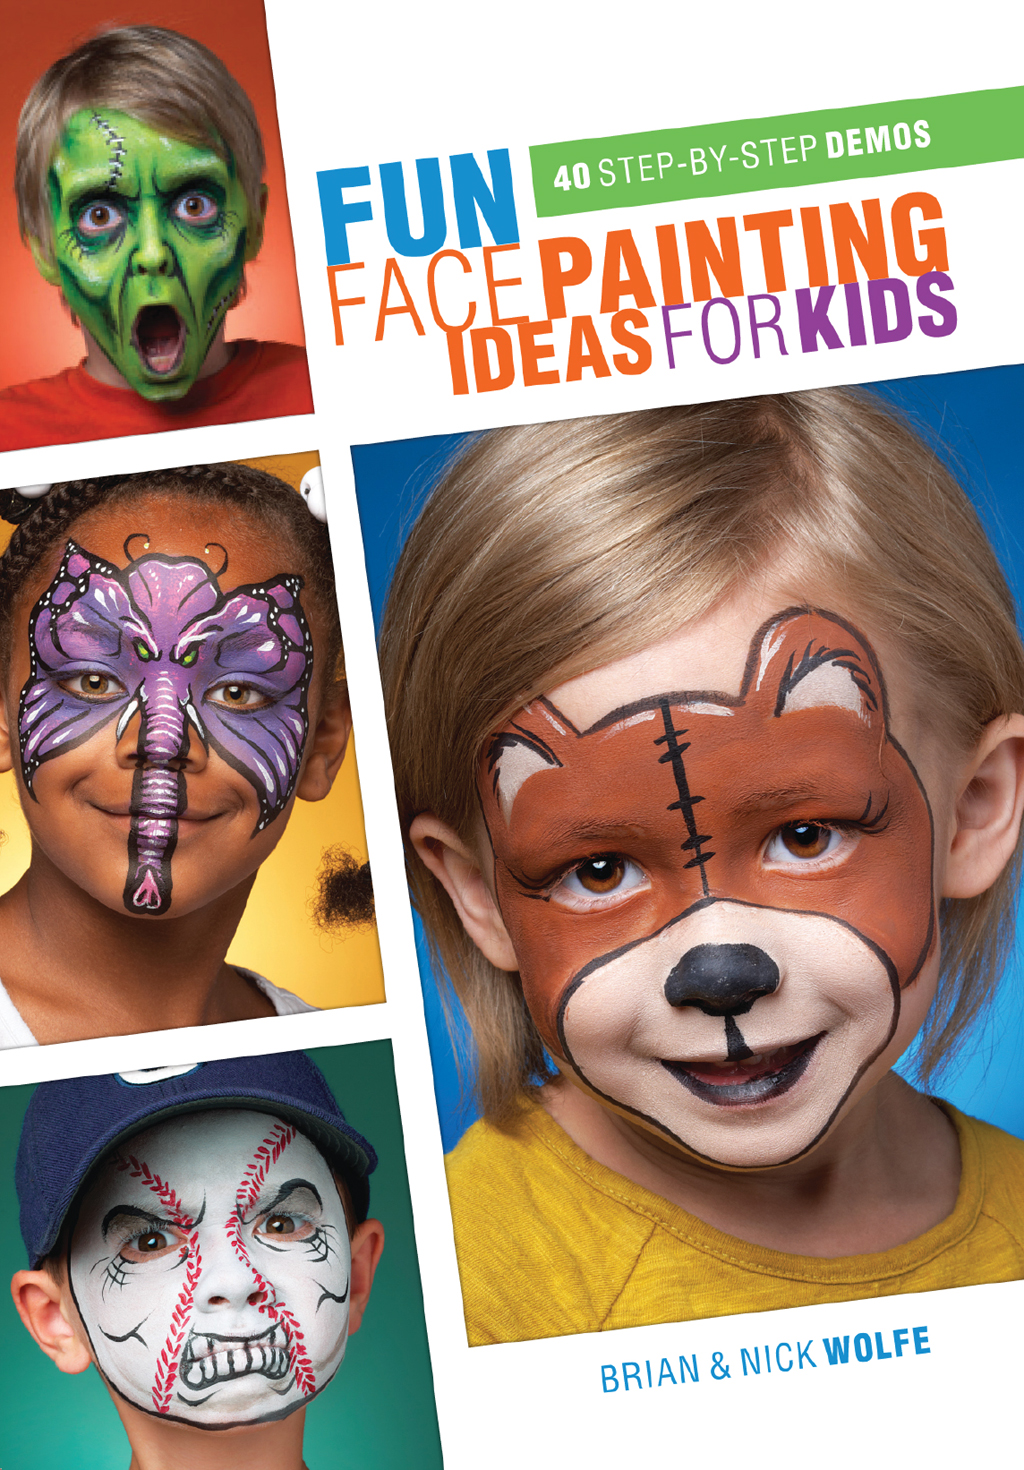 Fun Face Painting Ideas for Kids 40 Step-by-Step Demos